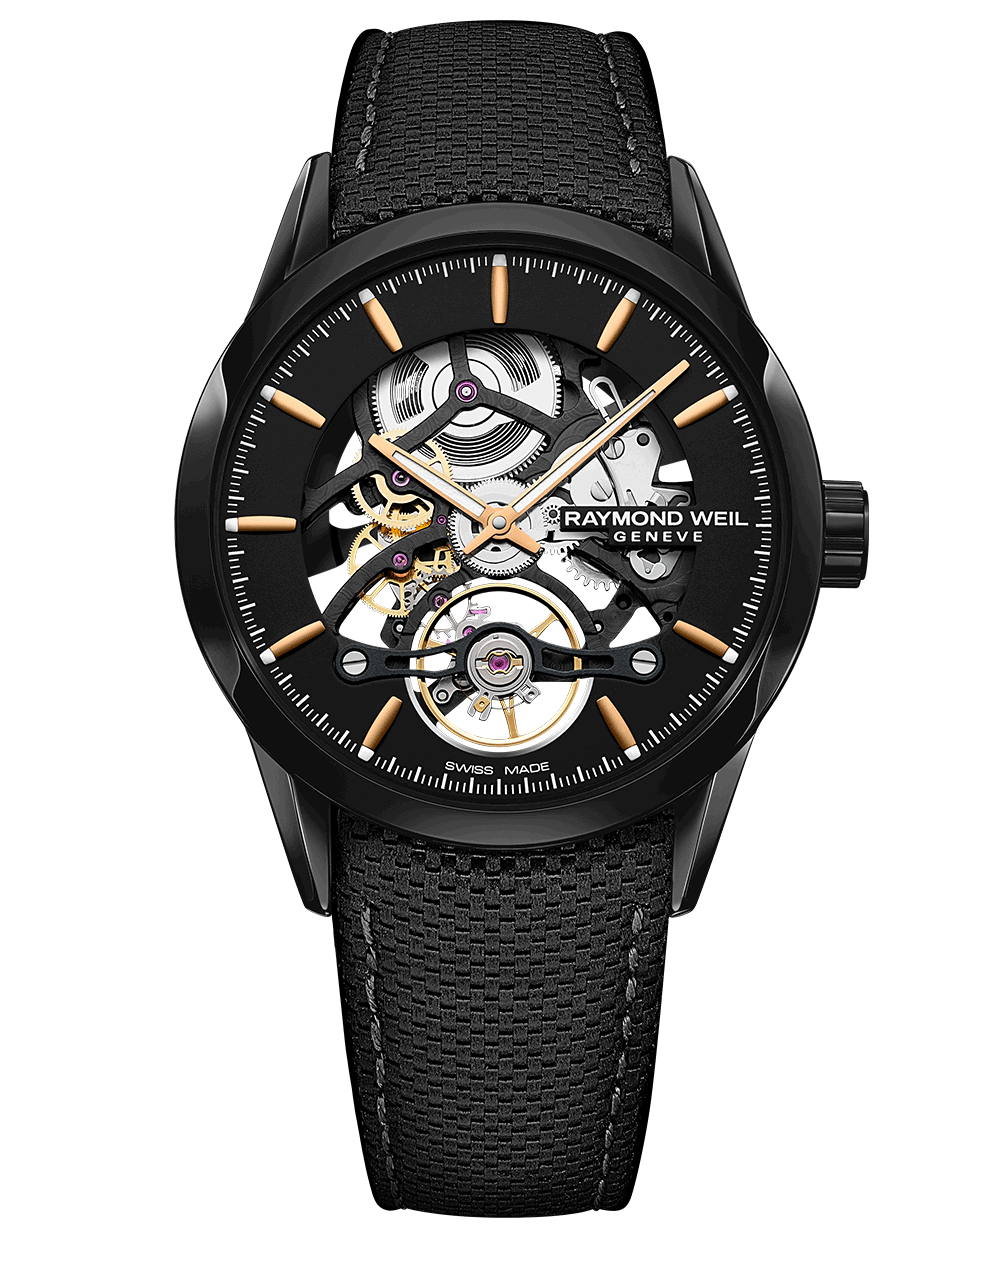 The Raymond Weil Freelancer Calibre RW1212 Skeleton watch